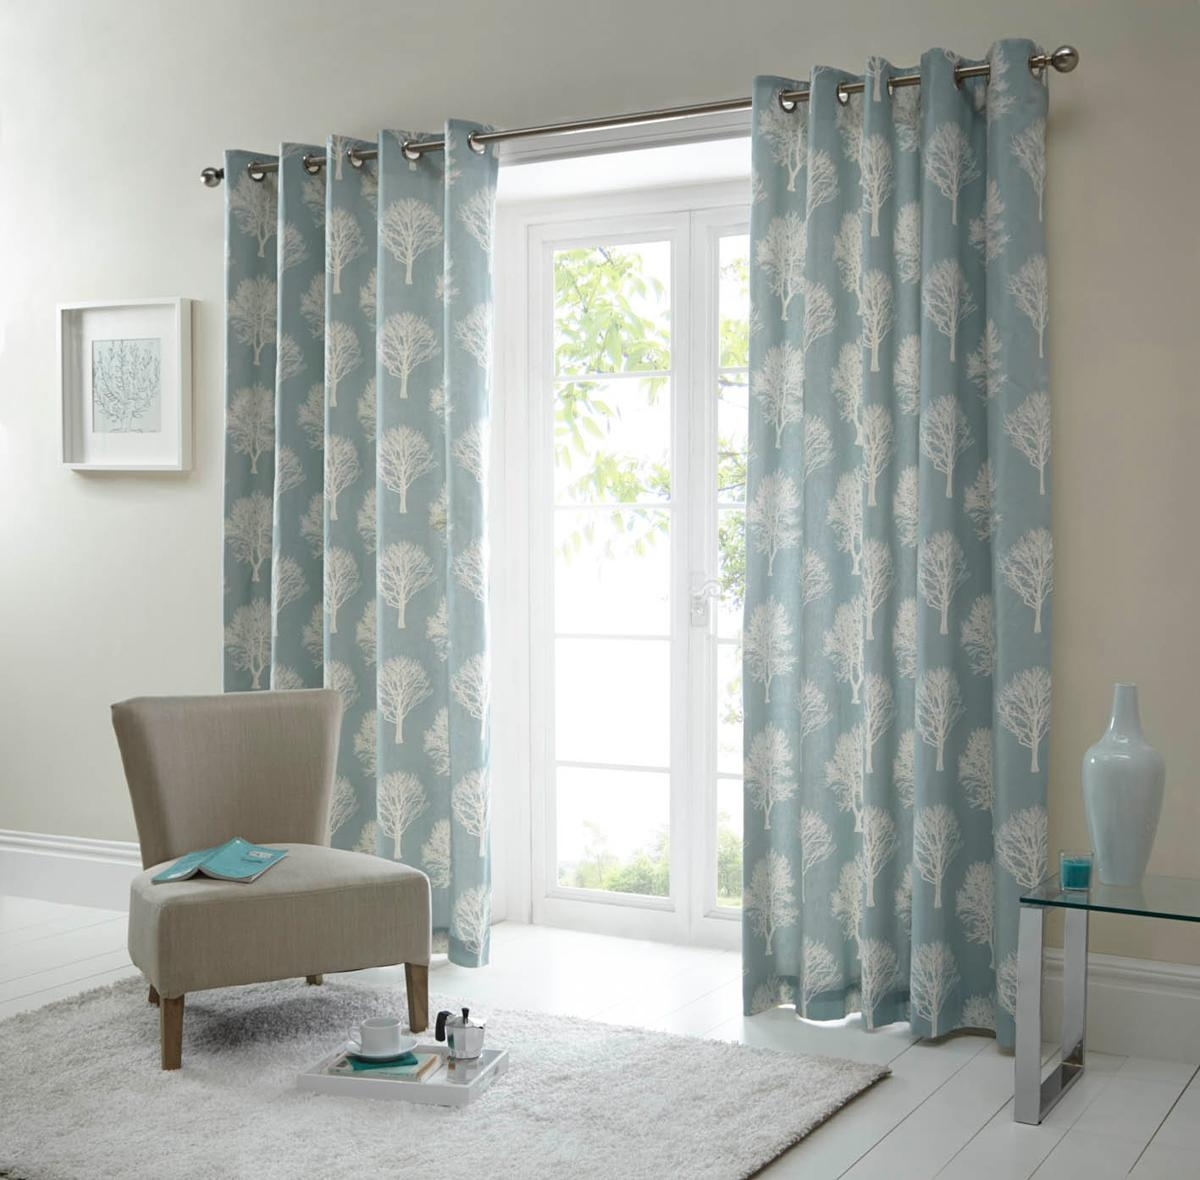 15 Collection Of Cotton Eyelet Curtains Curtain Ideas